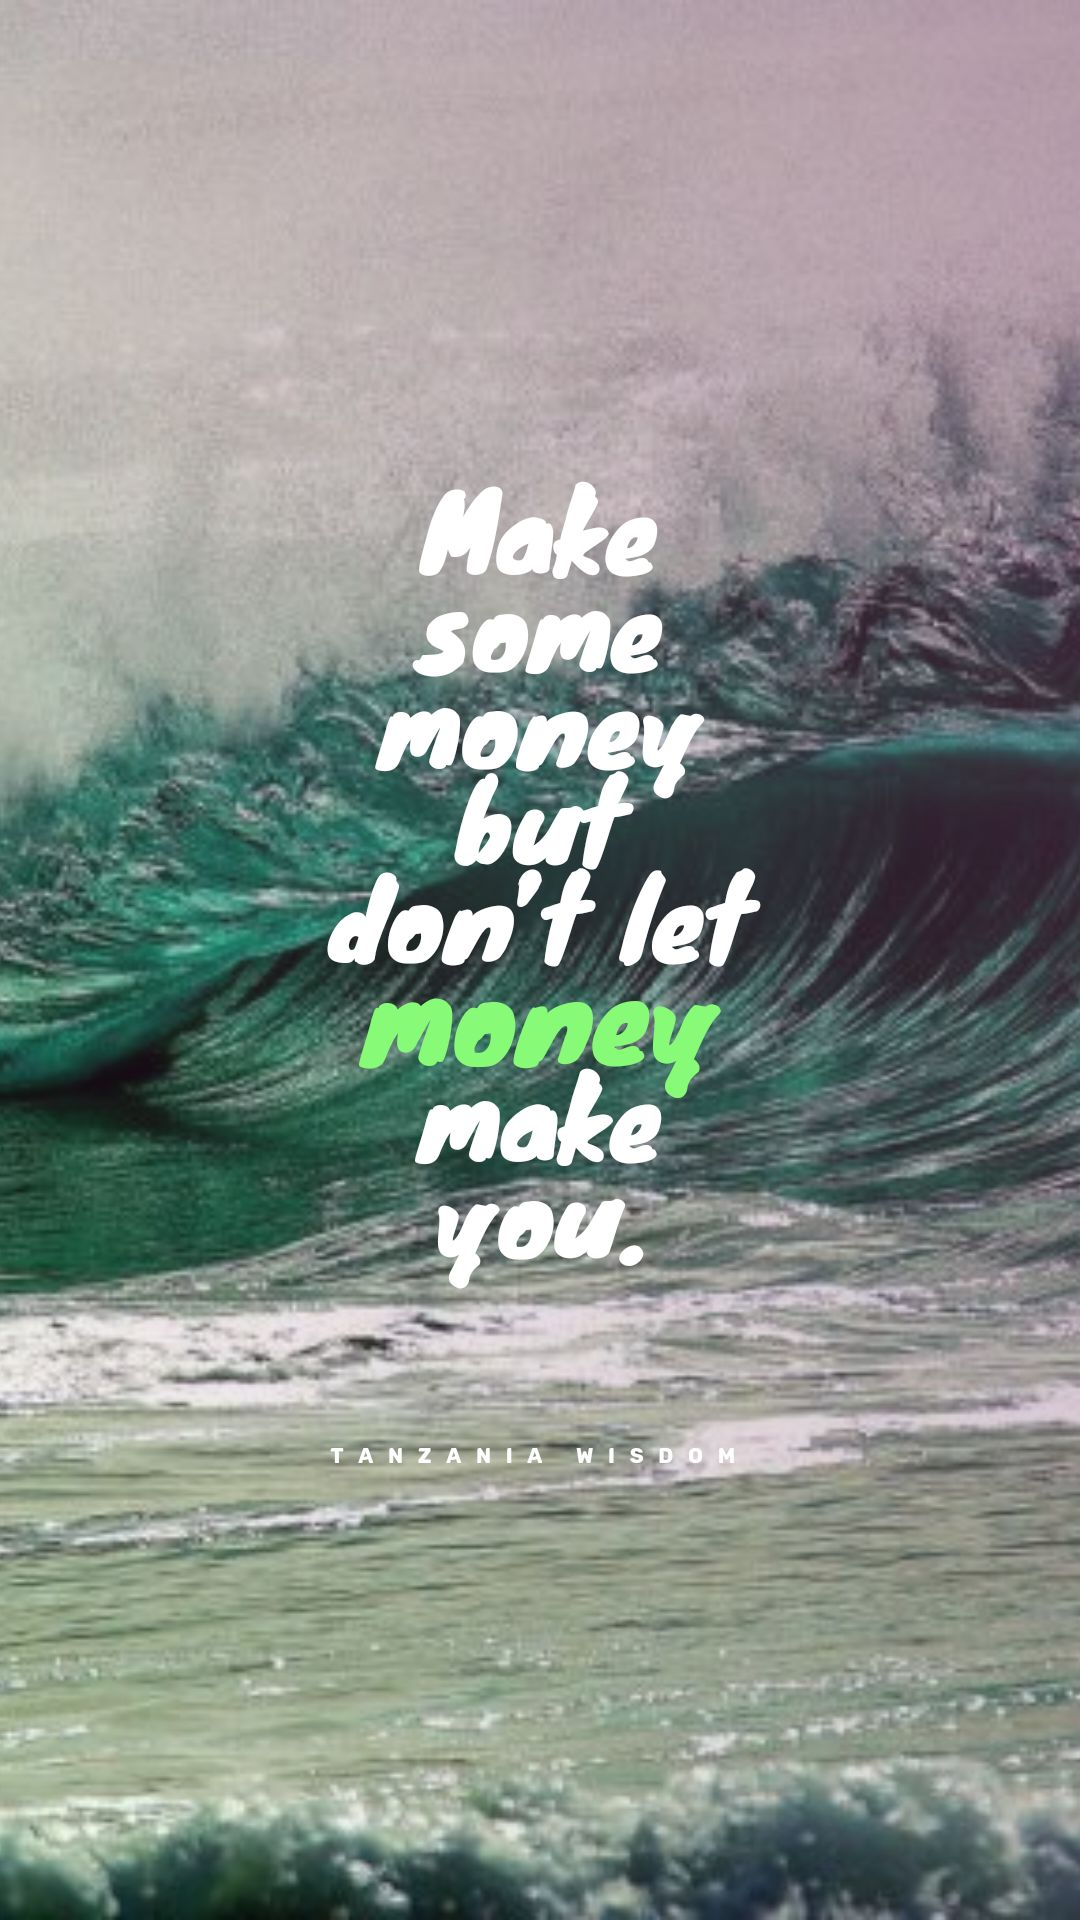 Quotes image of Make some money but don't let money make you.